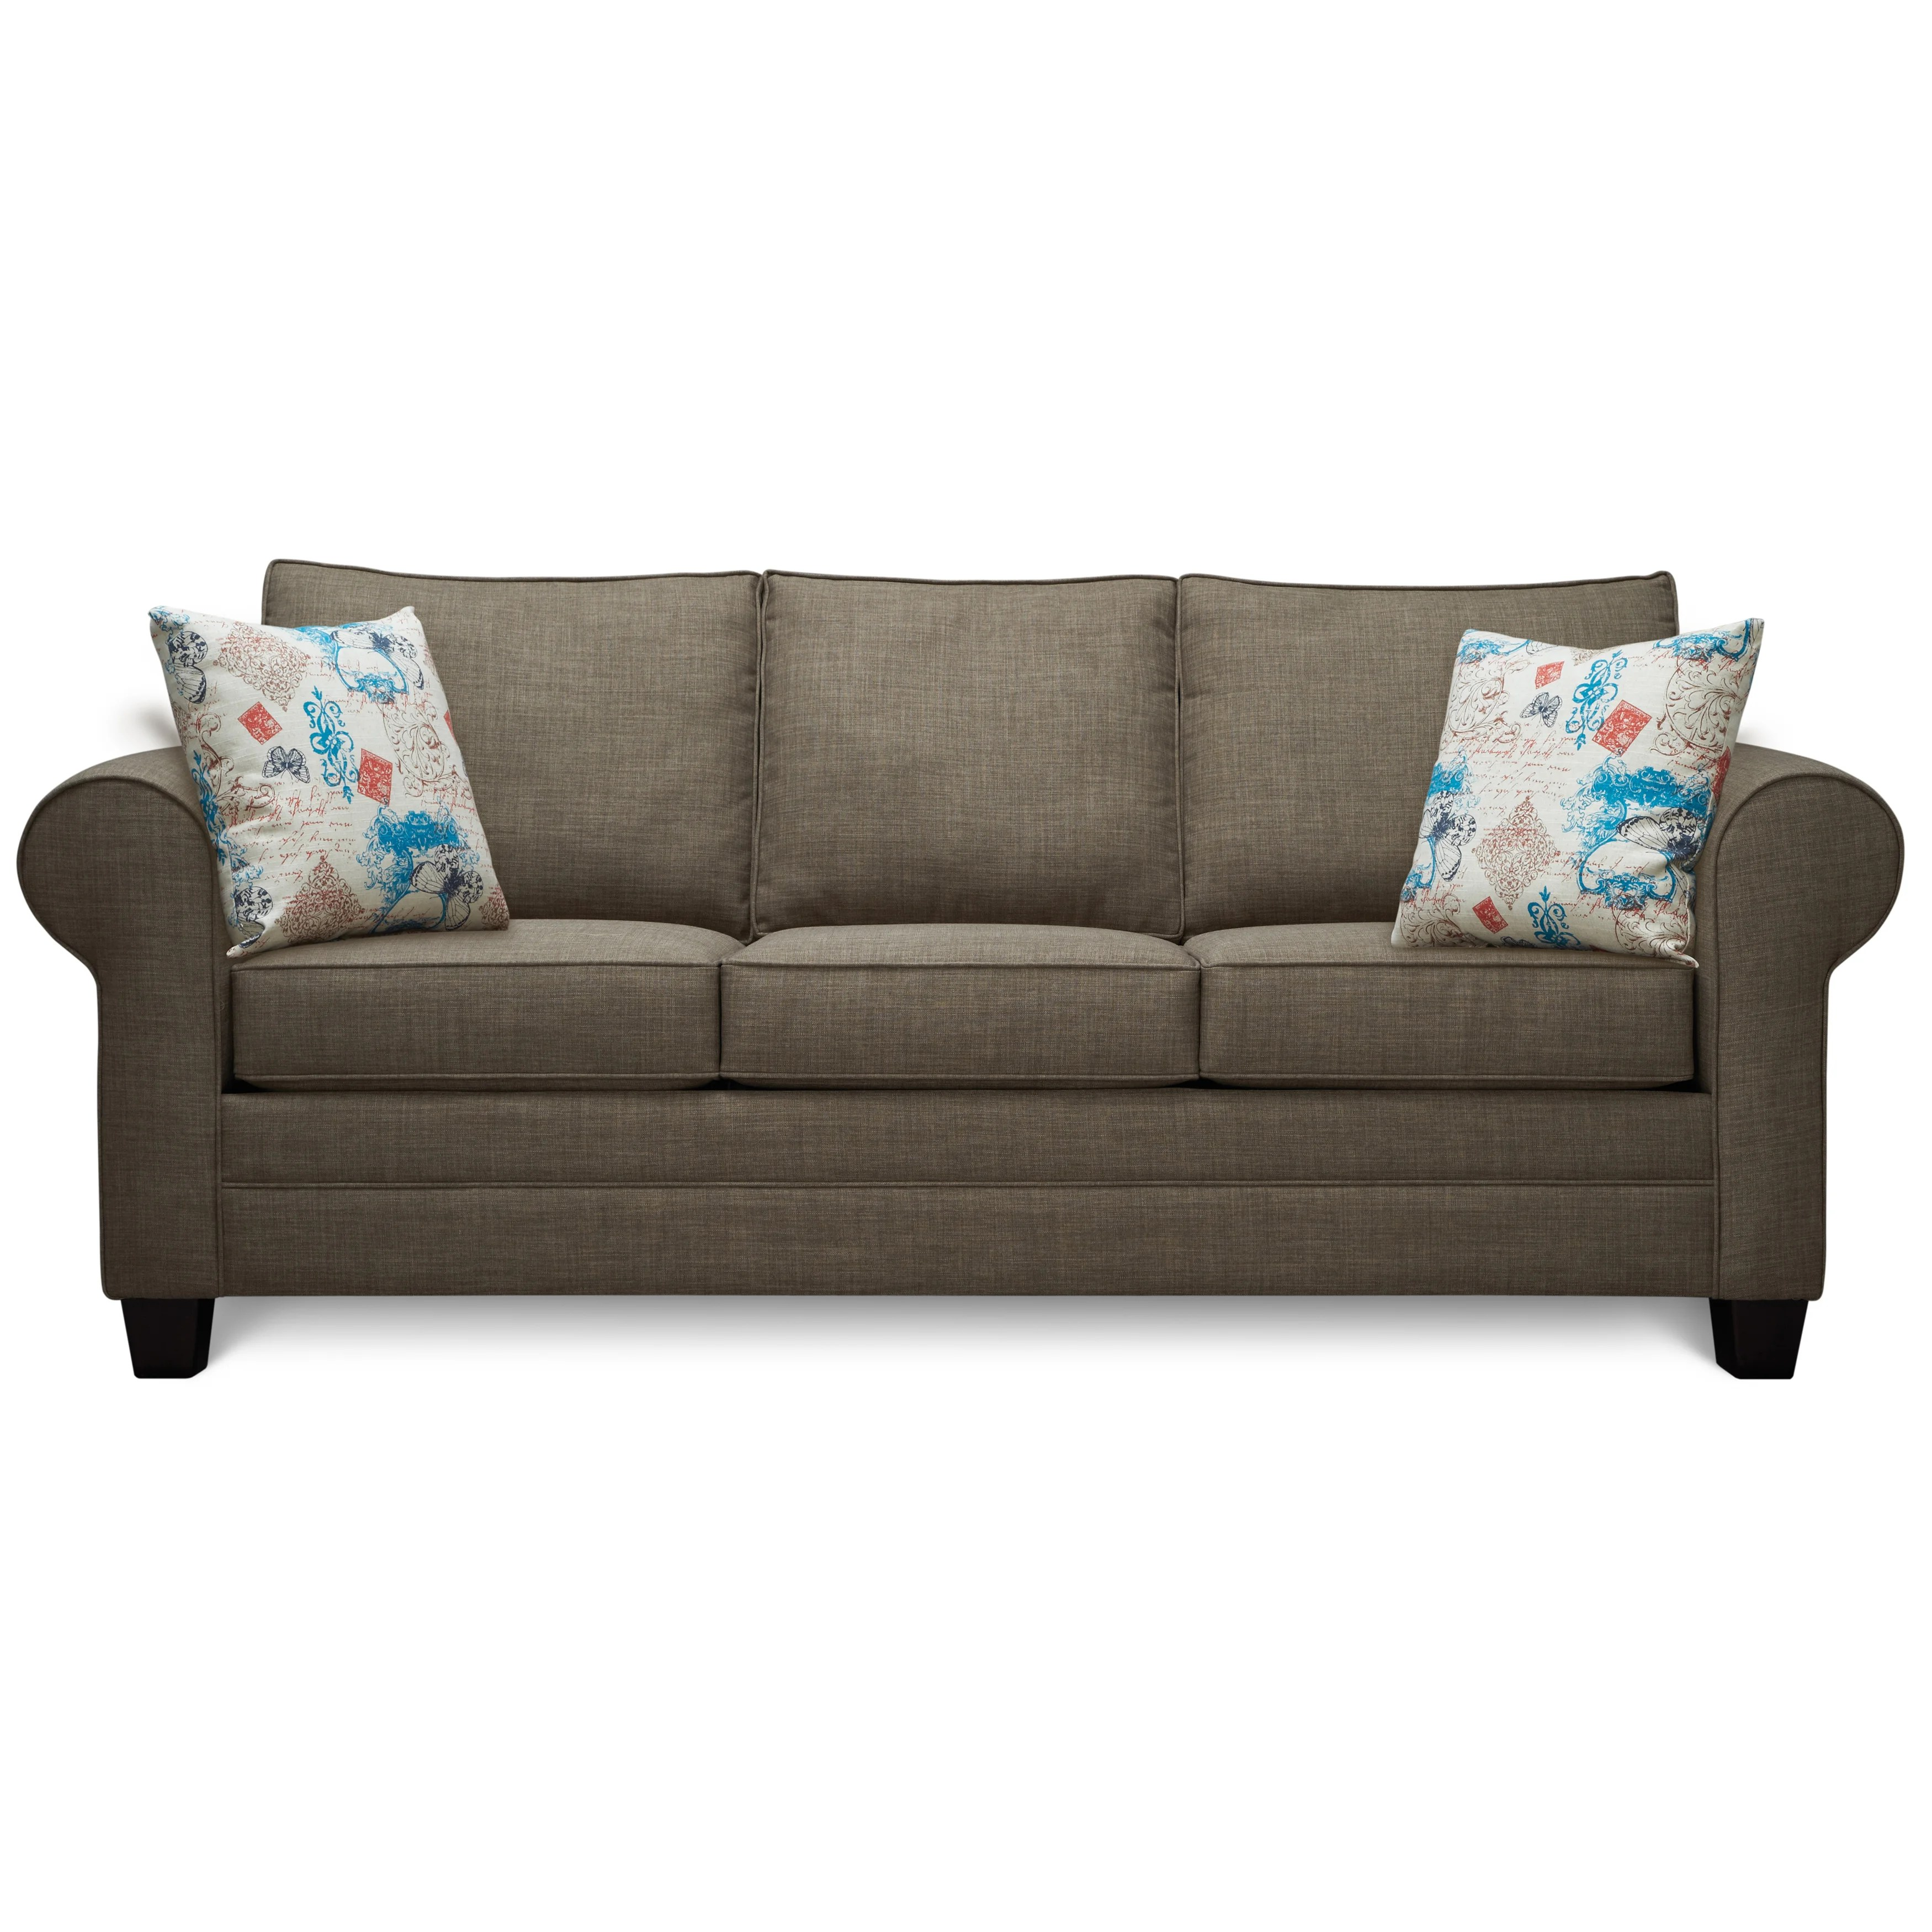 Sofa Take Home Today Art Van Saxon Stone Sofa With Accent Pillows